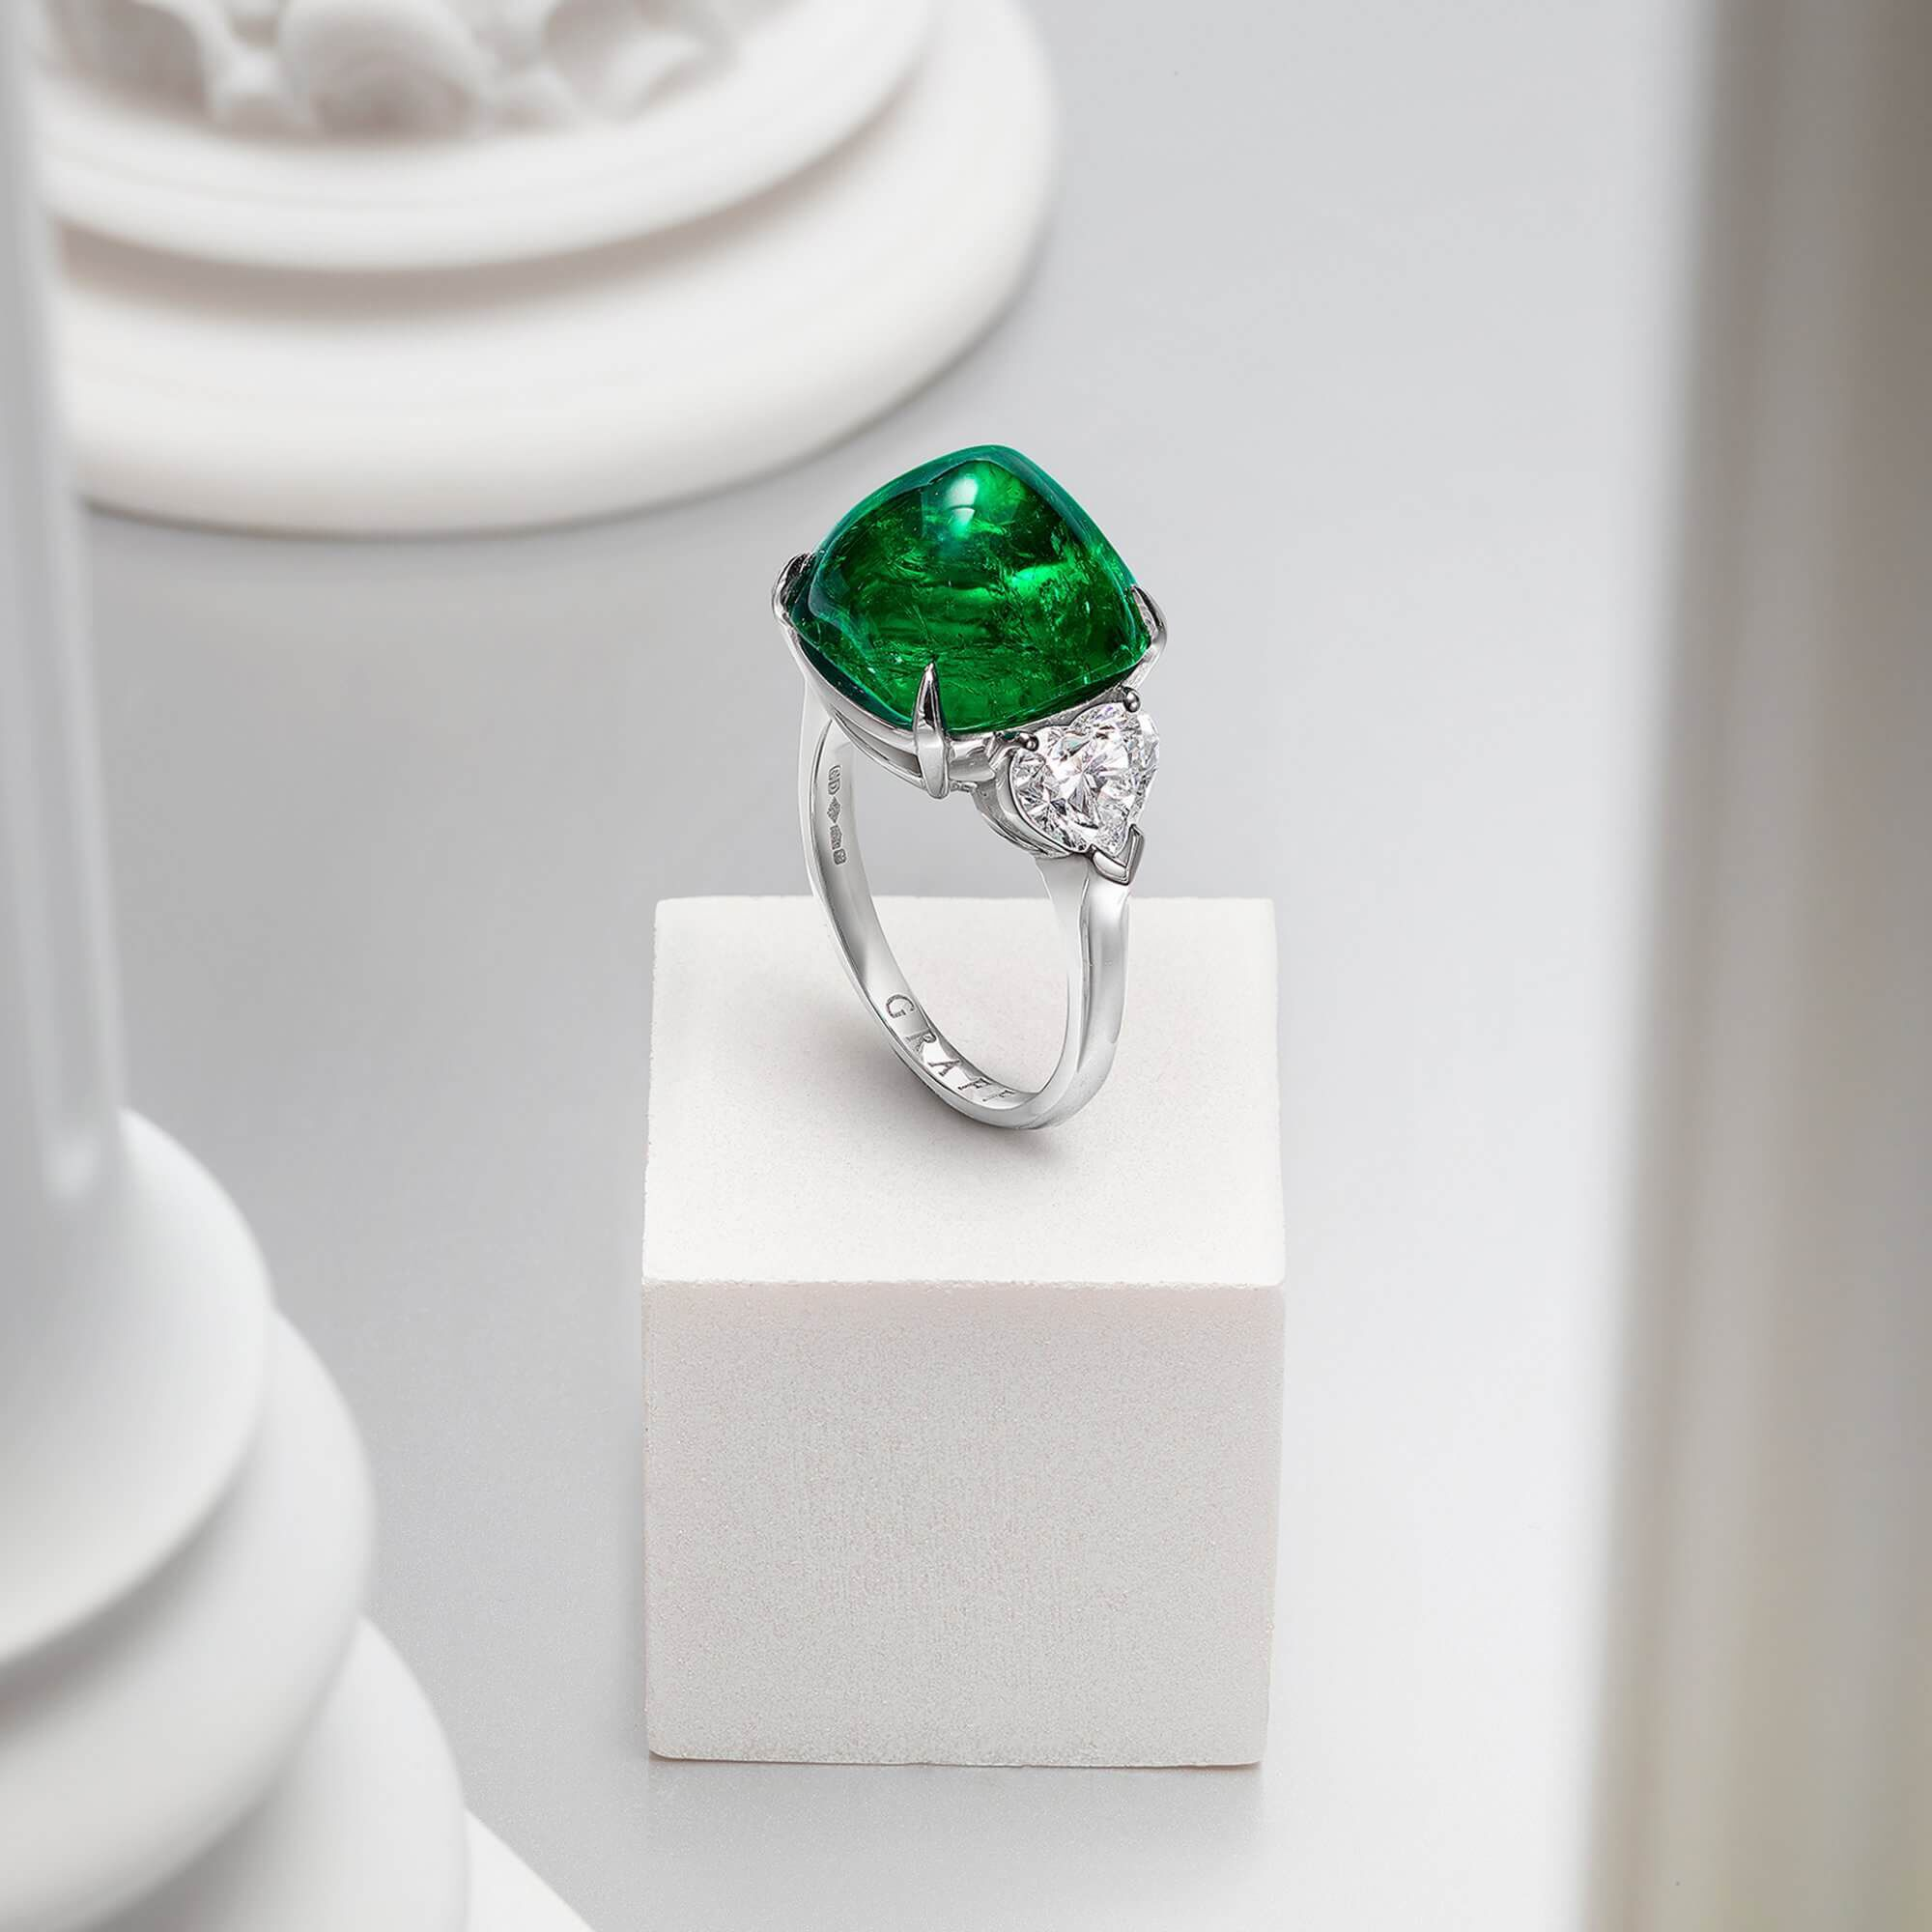 Graff Cabochon Emerald Promise High Jewellery Ring With White Heart Shape Diamond Shoulders inside a Gallery